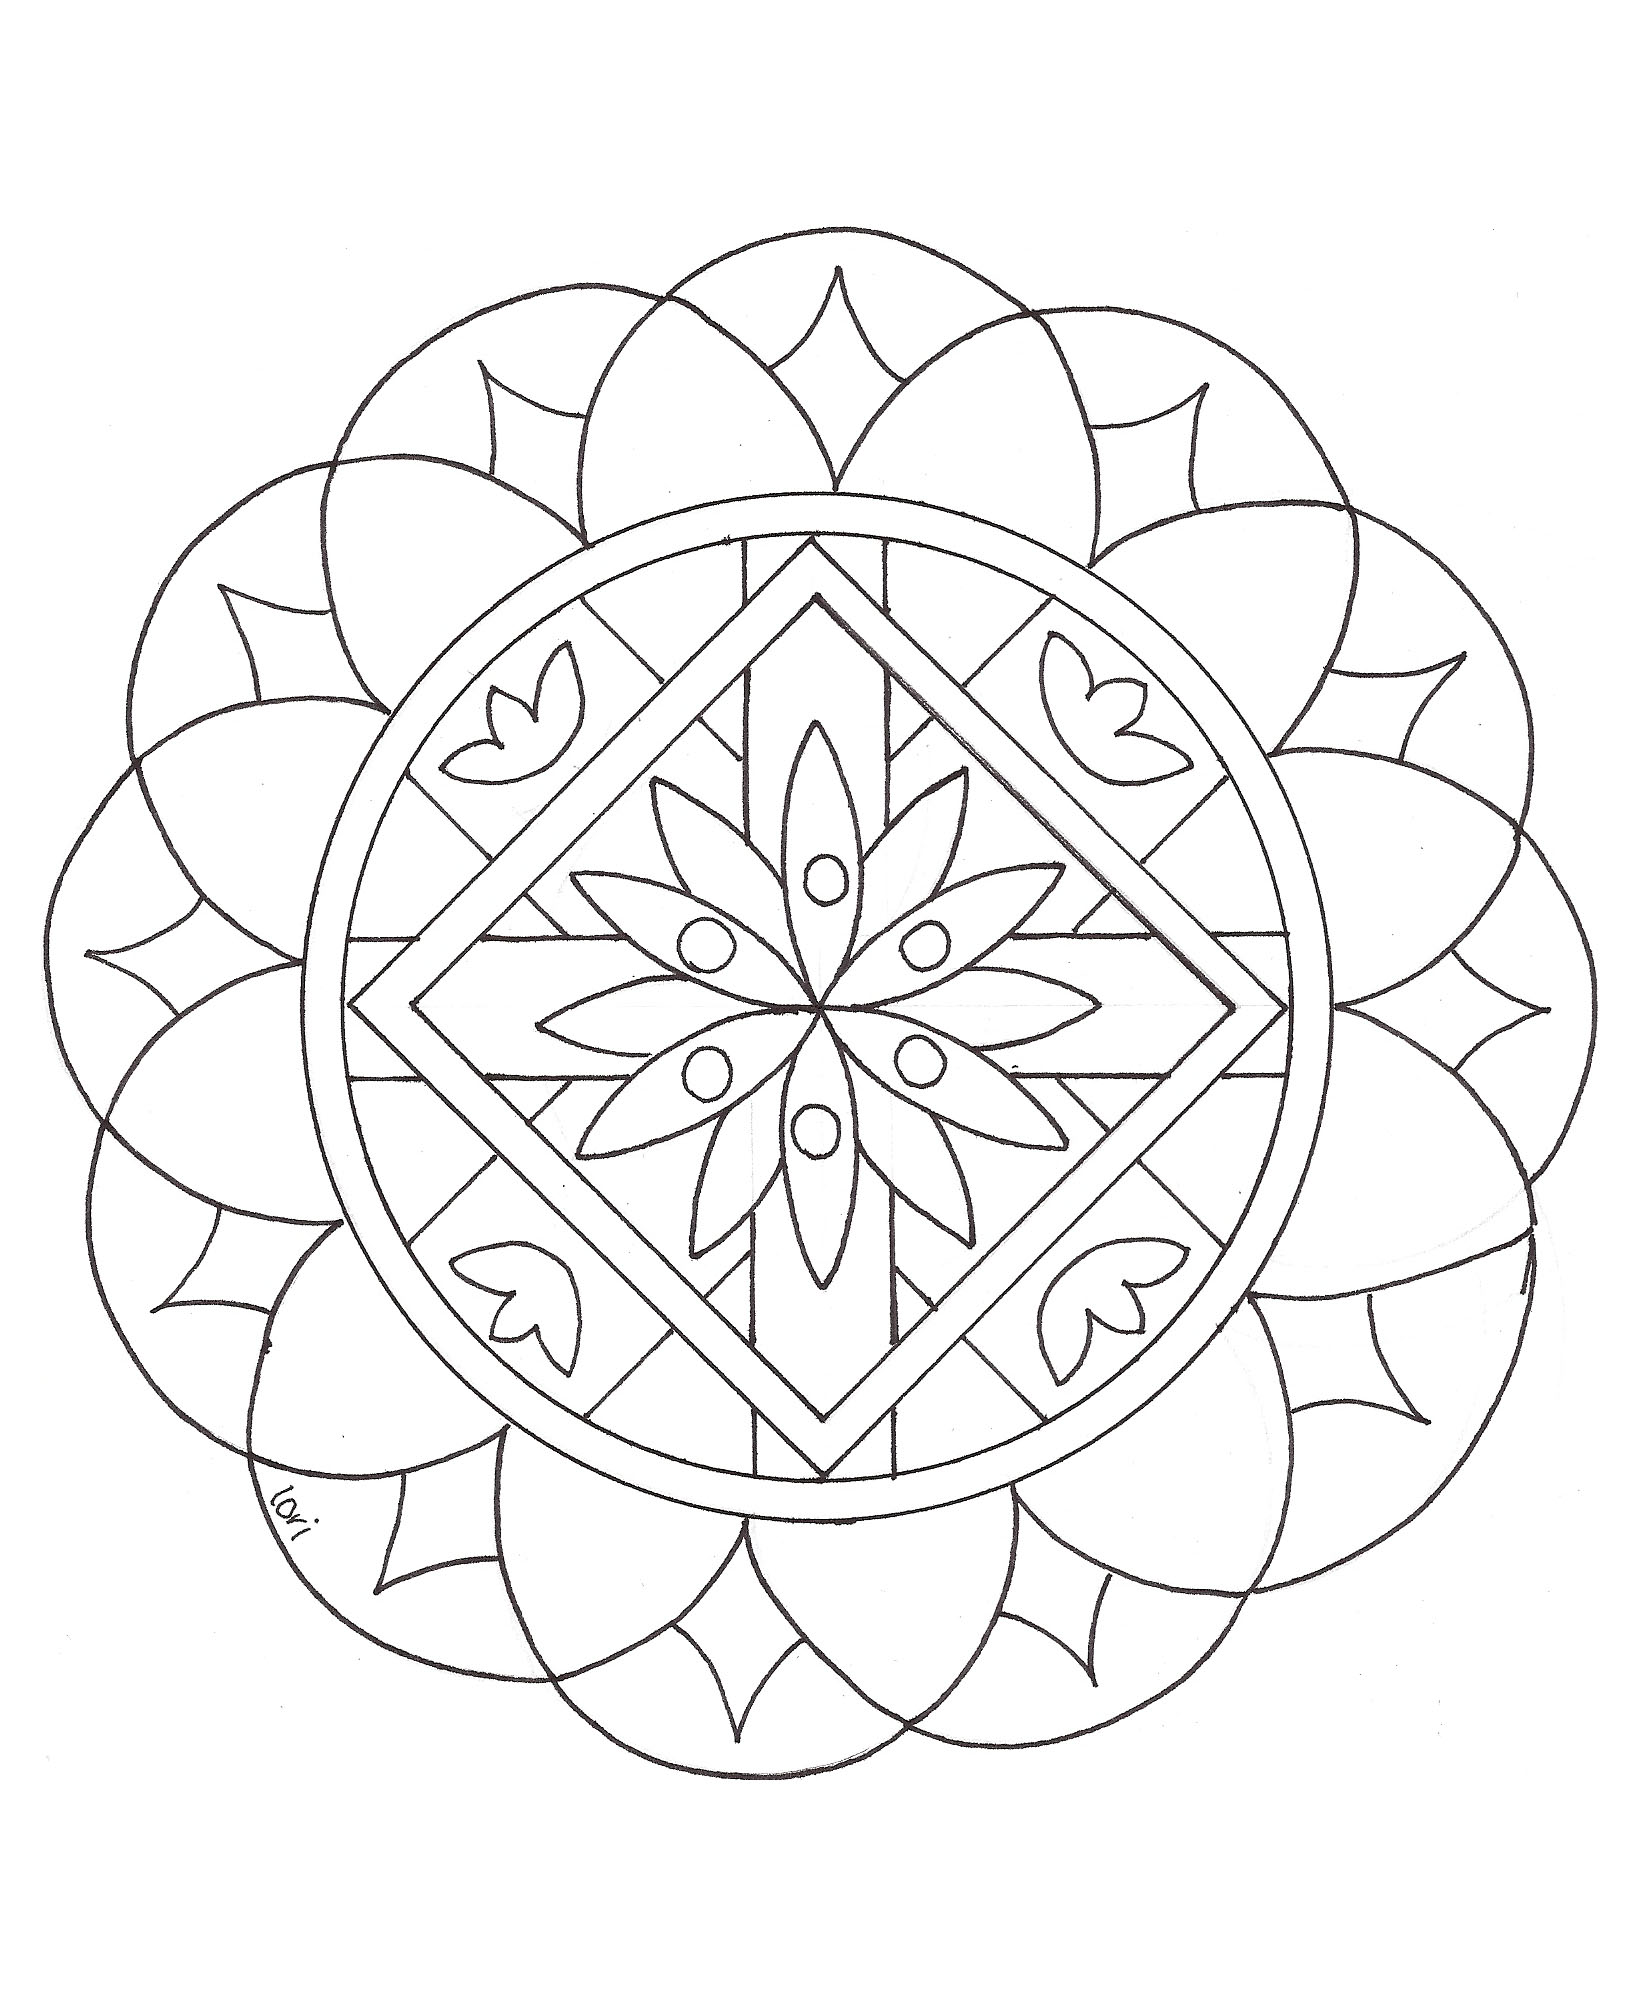 Simple Mandala 2 Mampalas Coloring Pages For Kids To Print